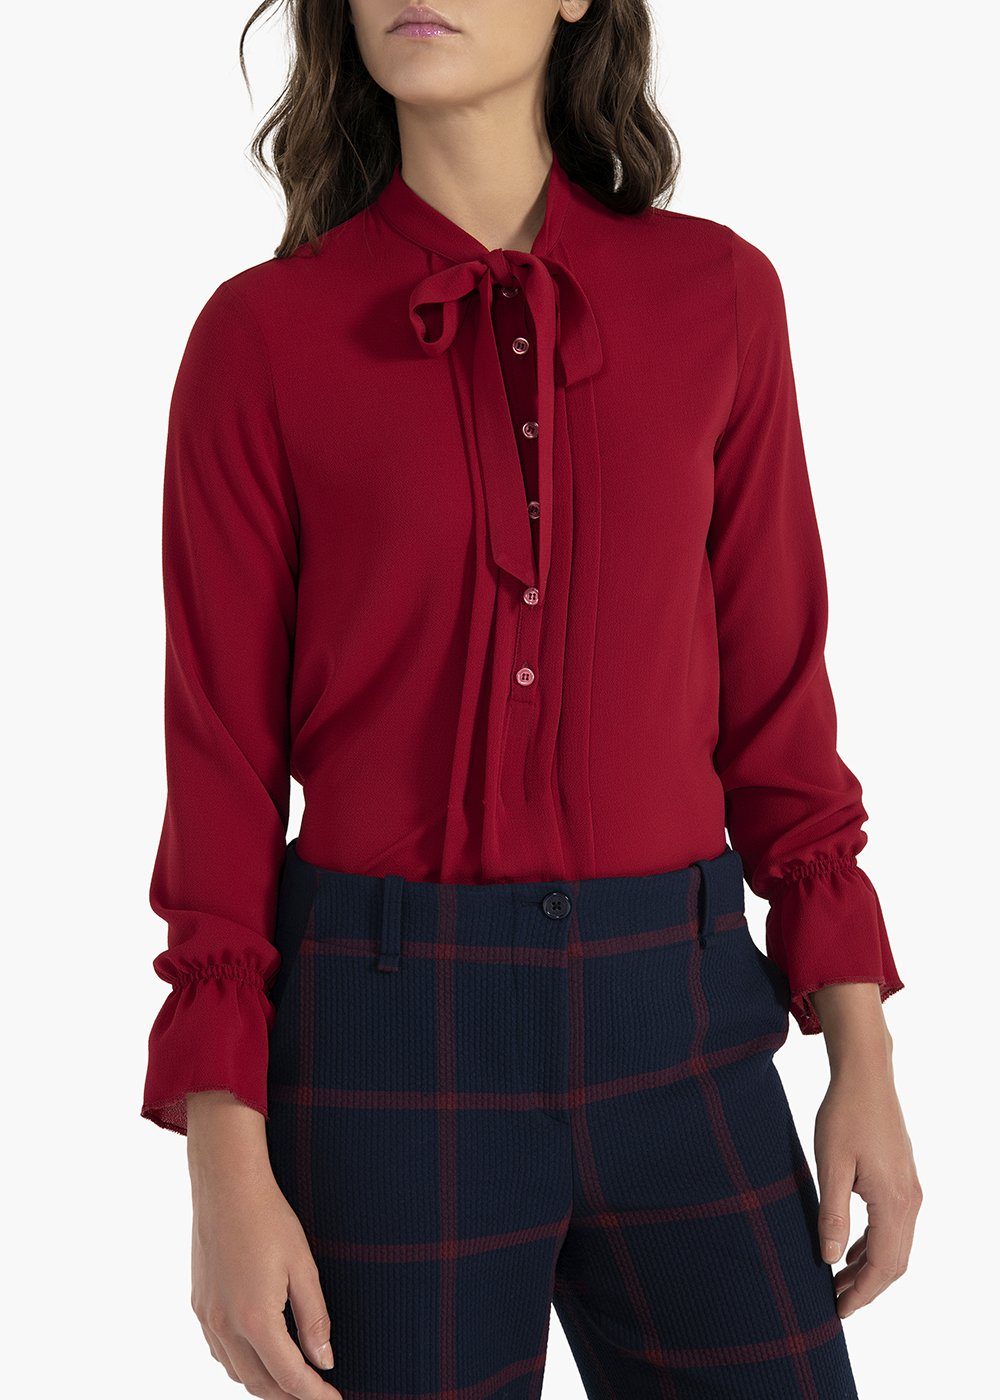 Catia shirt with scarf collar and curled cuffs - Bordeaux - Woman